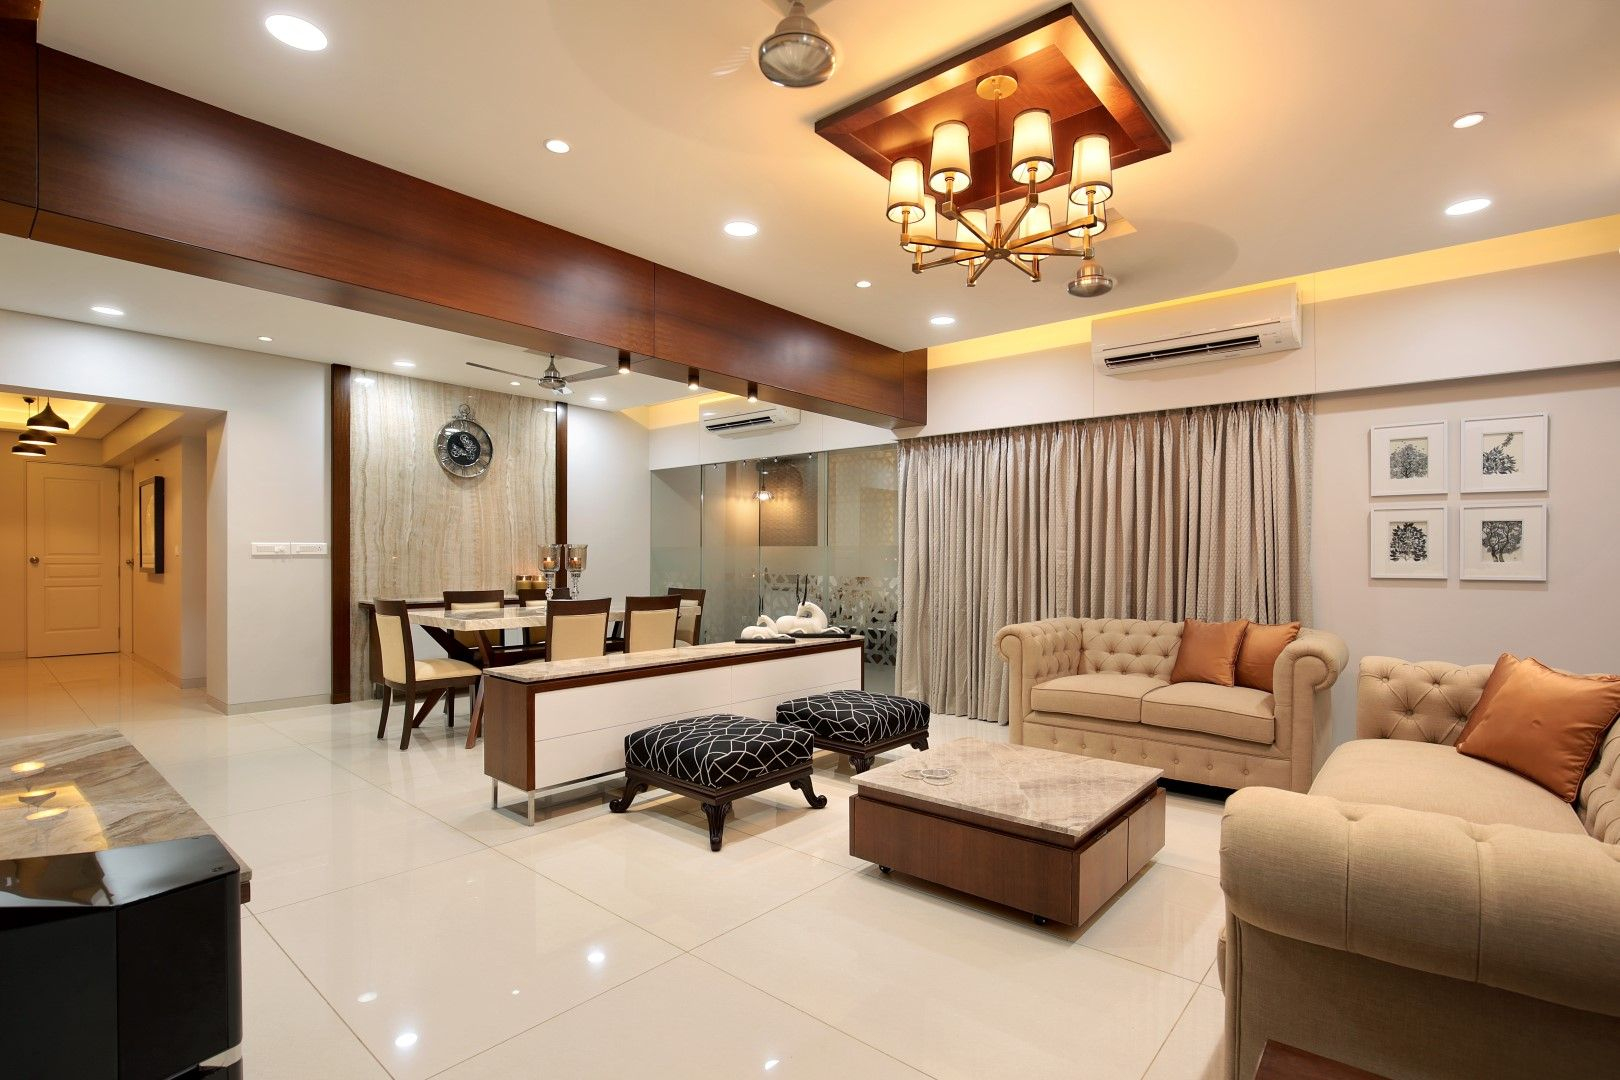 3 Bhk Flat Interiors The Oak Woods Vadodara Studio7 The Architects Diary Casual Living Room Furniture Flat Interior Apartment Interior Design